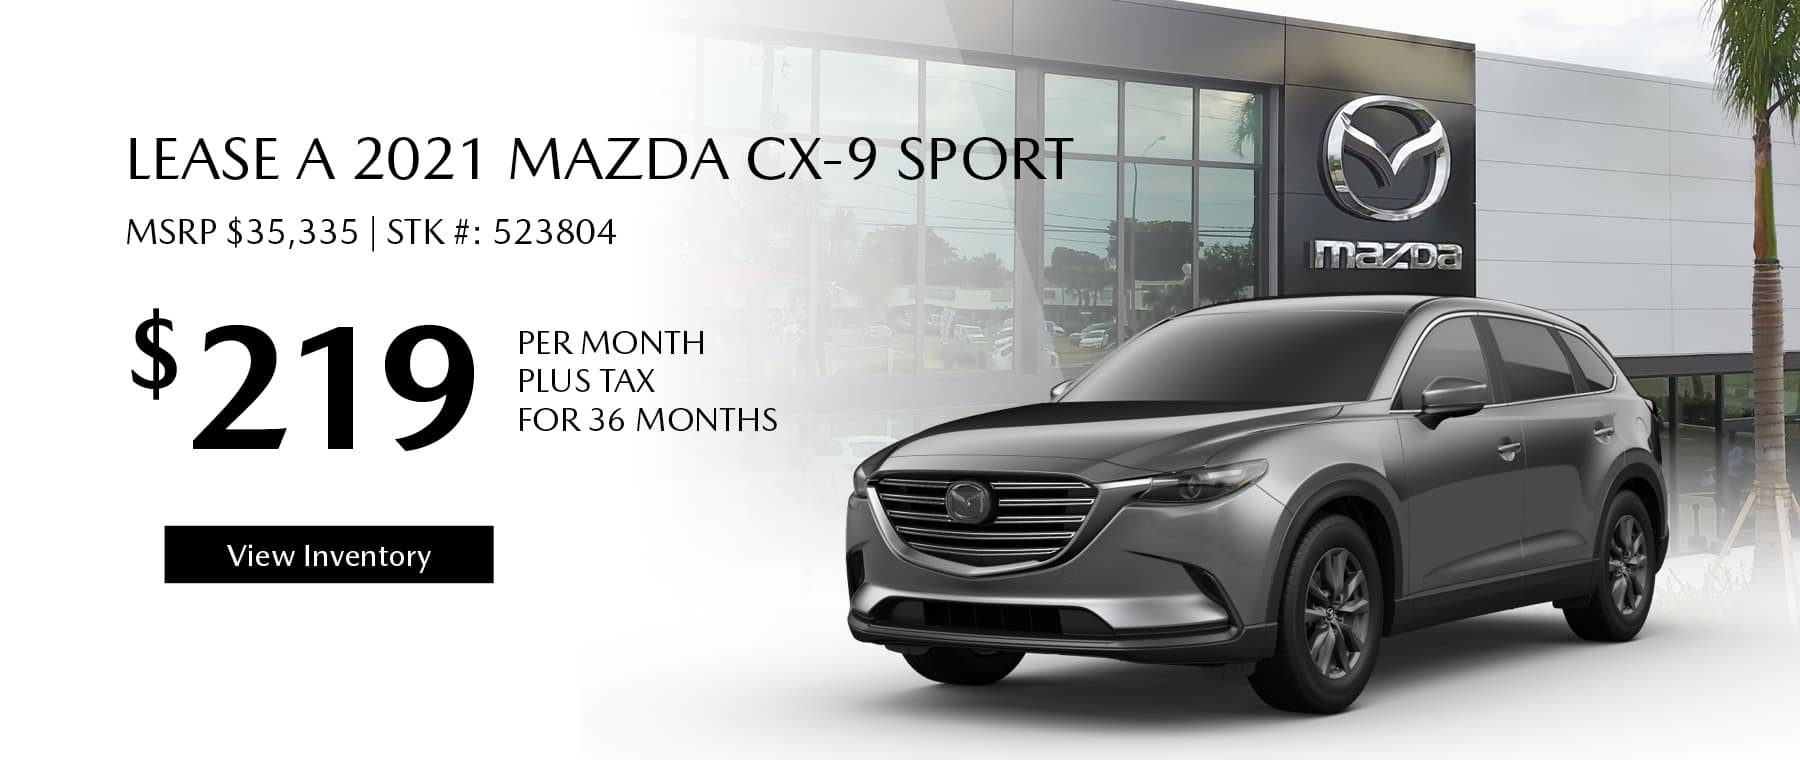 Lease the 2021 Mazda CX-9 for $219 per month, plus tax for 36 months. Click or tap here to view our inventory.